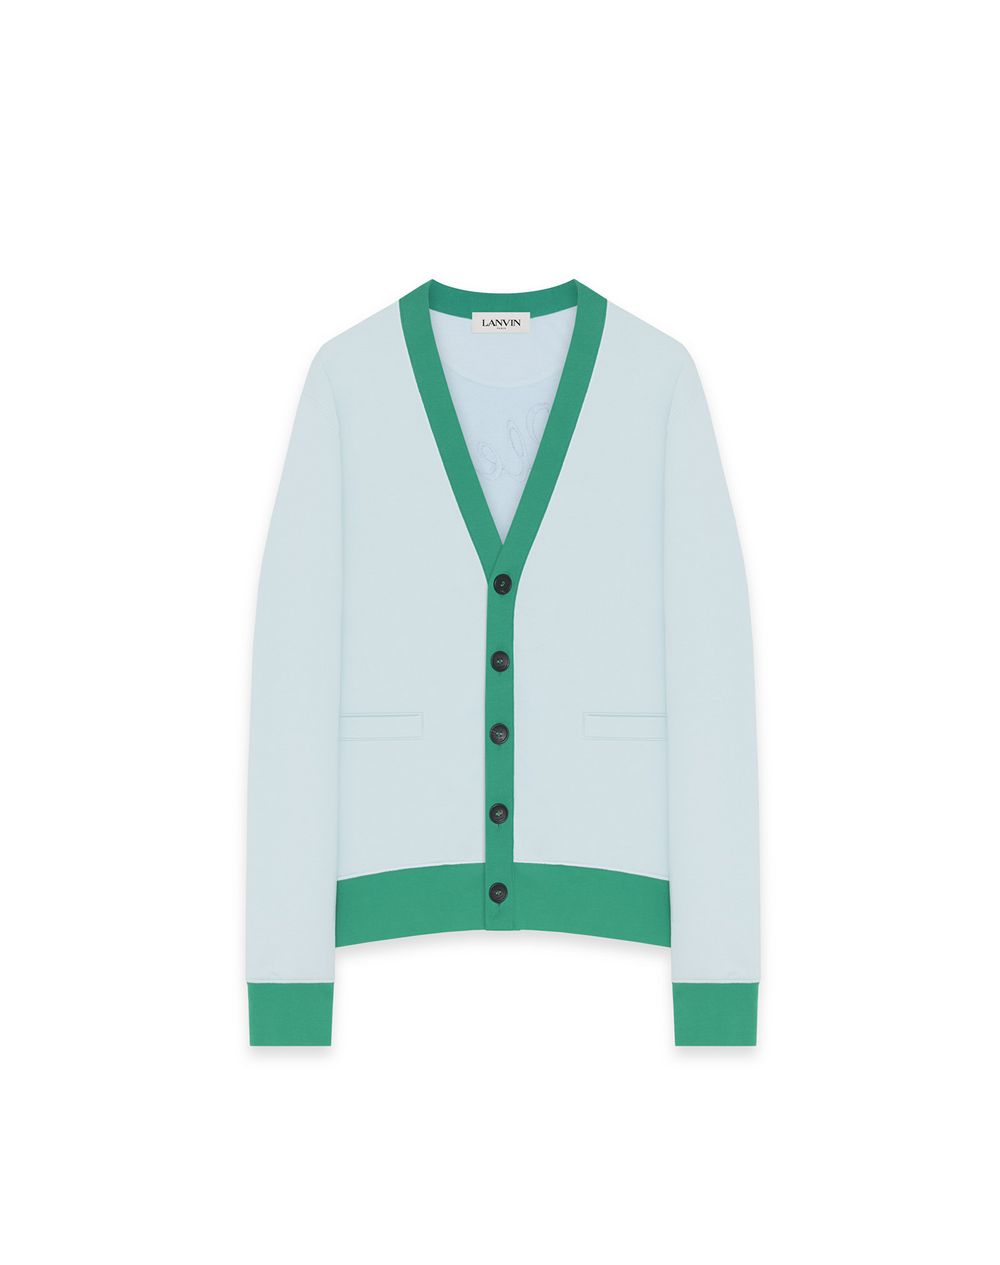 FULL SUN COTTON CARDIGAN - Lanvin